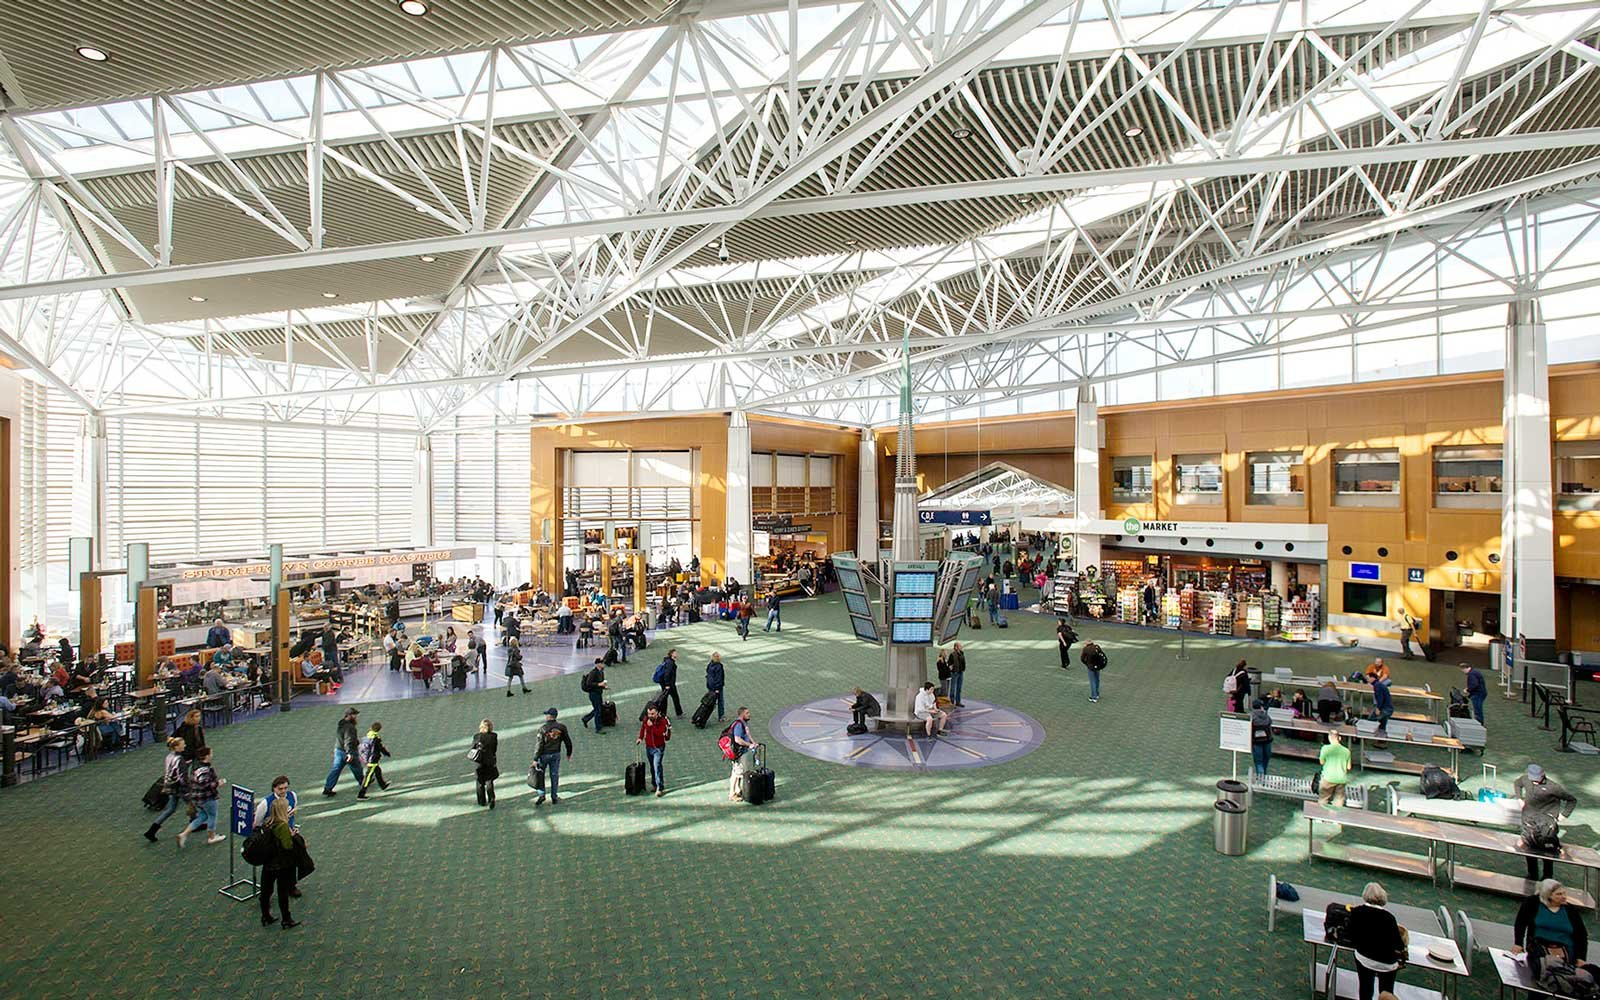 Interior of PDX Portland Airport